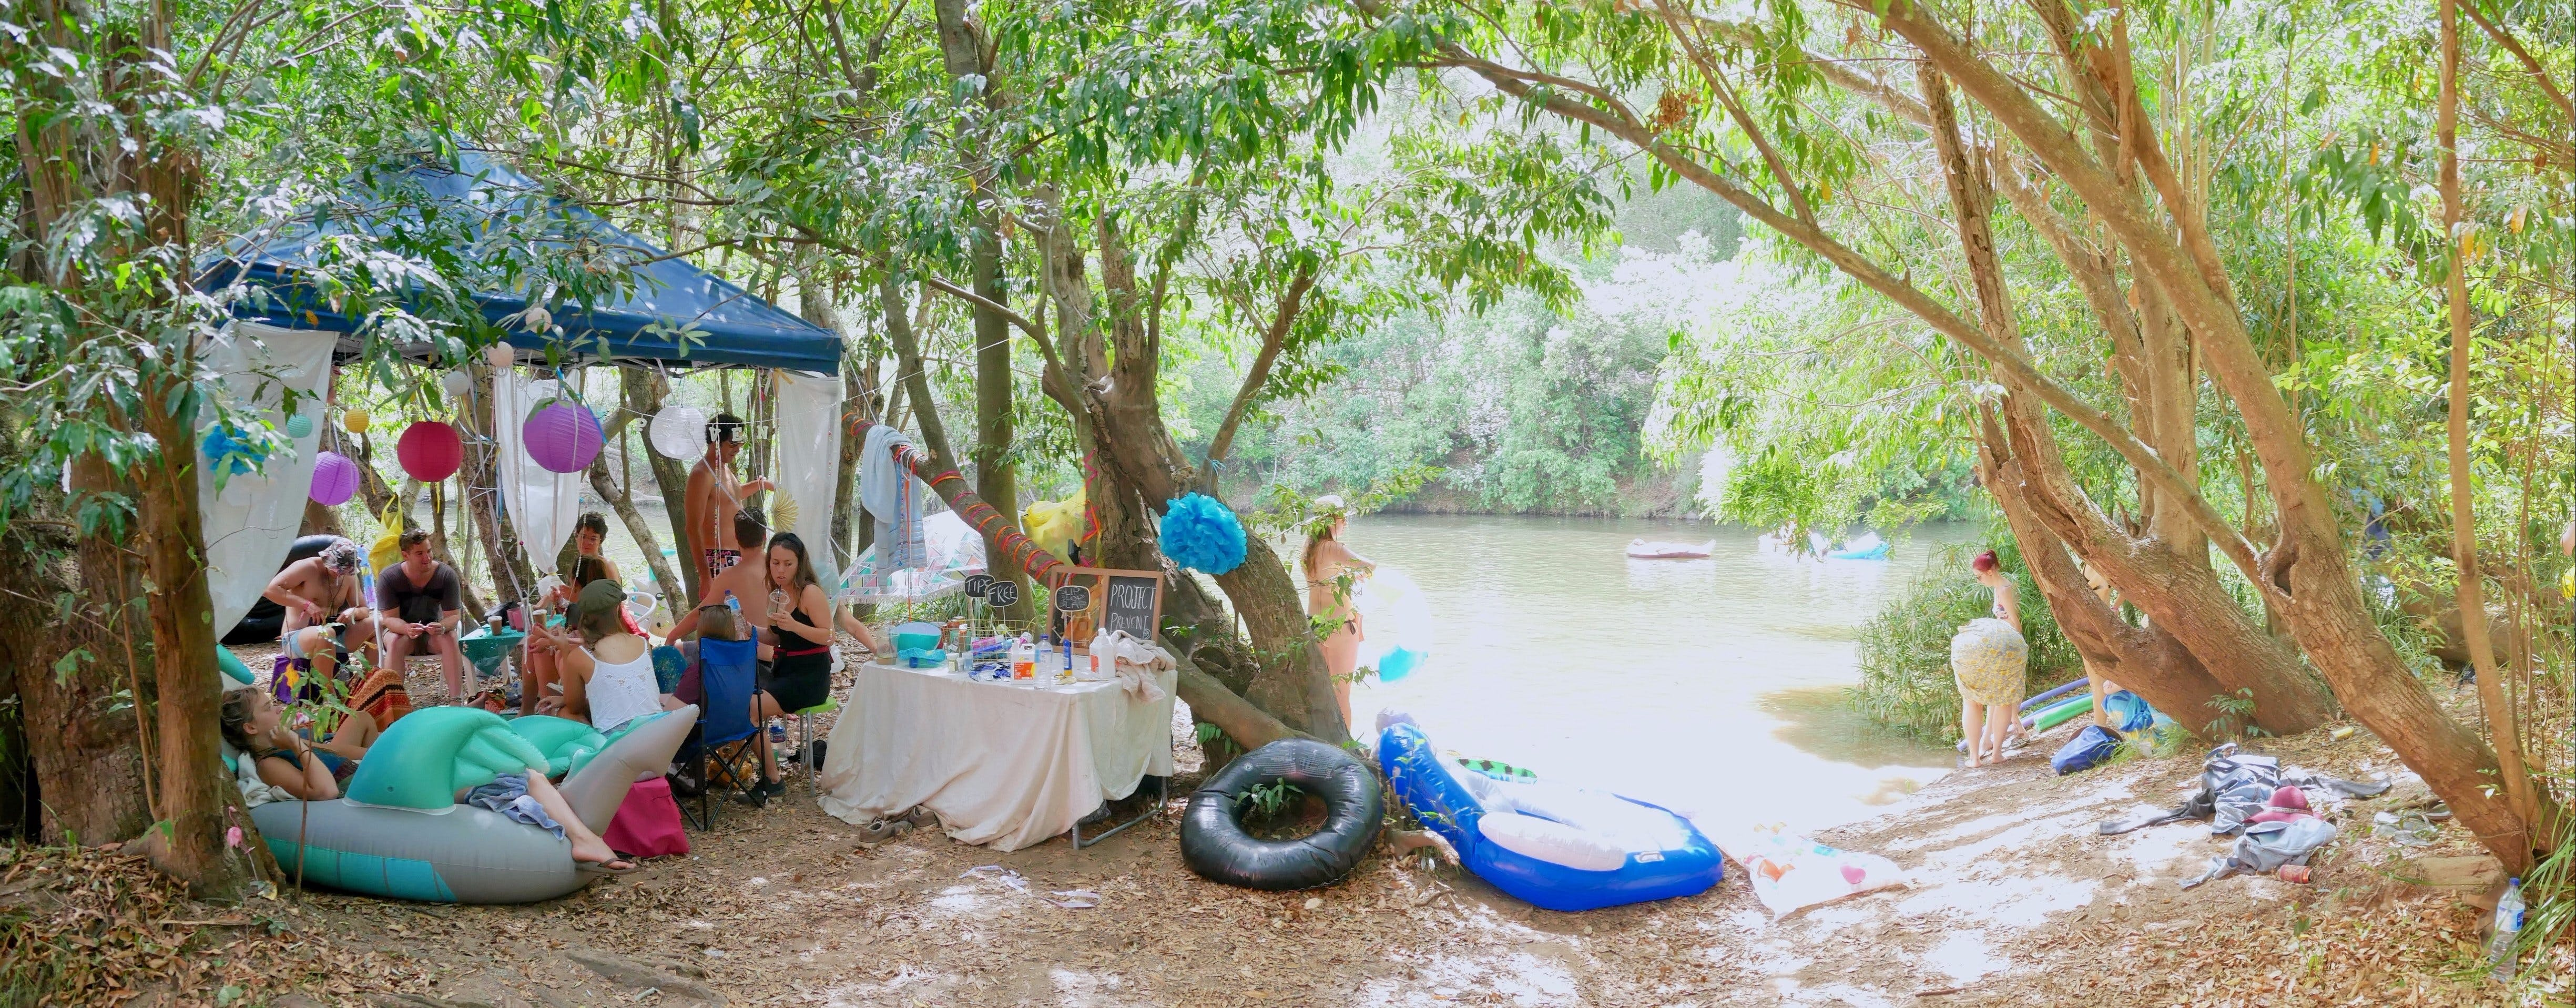 Jungle Love Festival - VIC Tourism